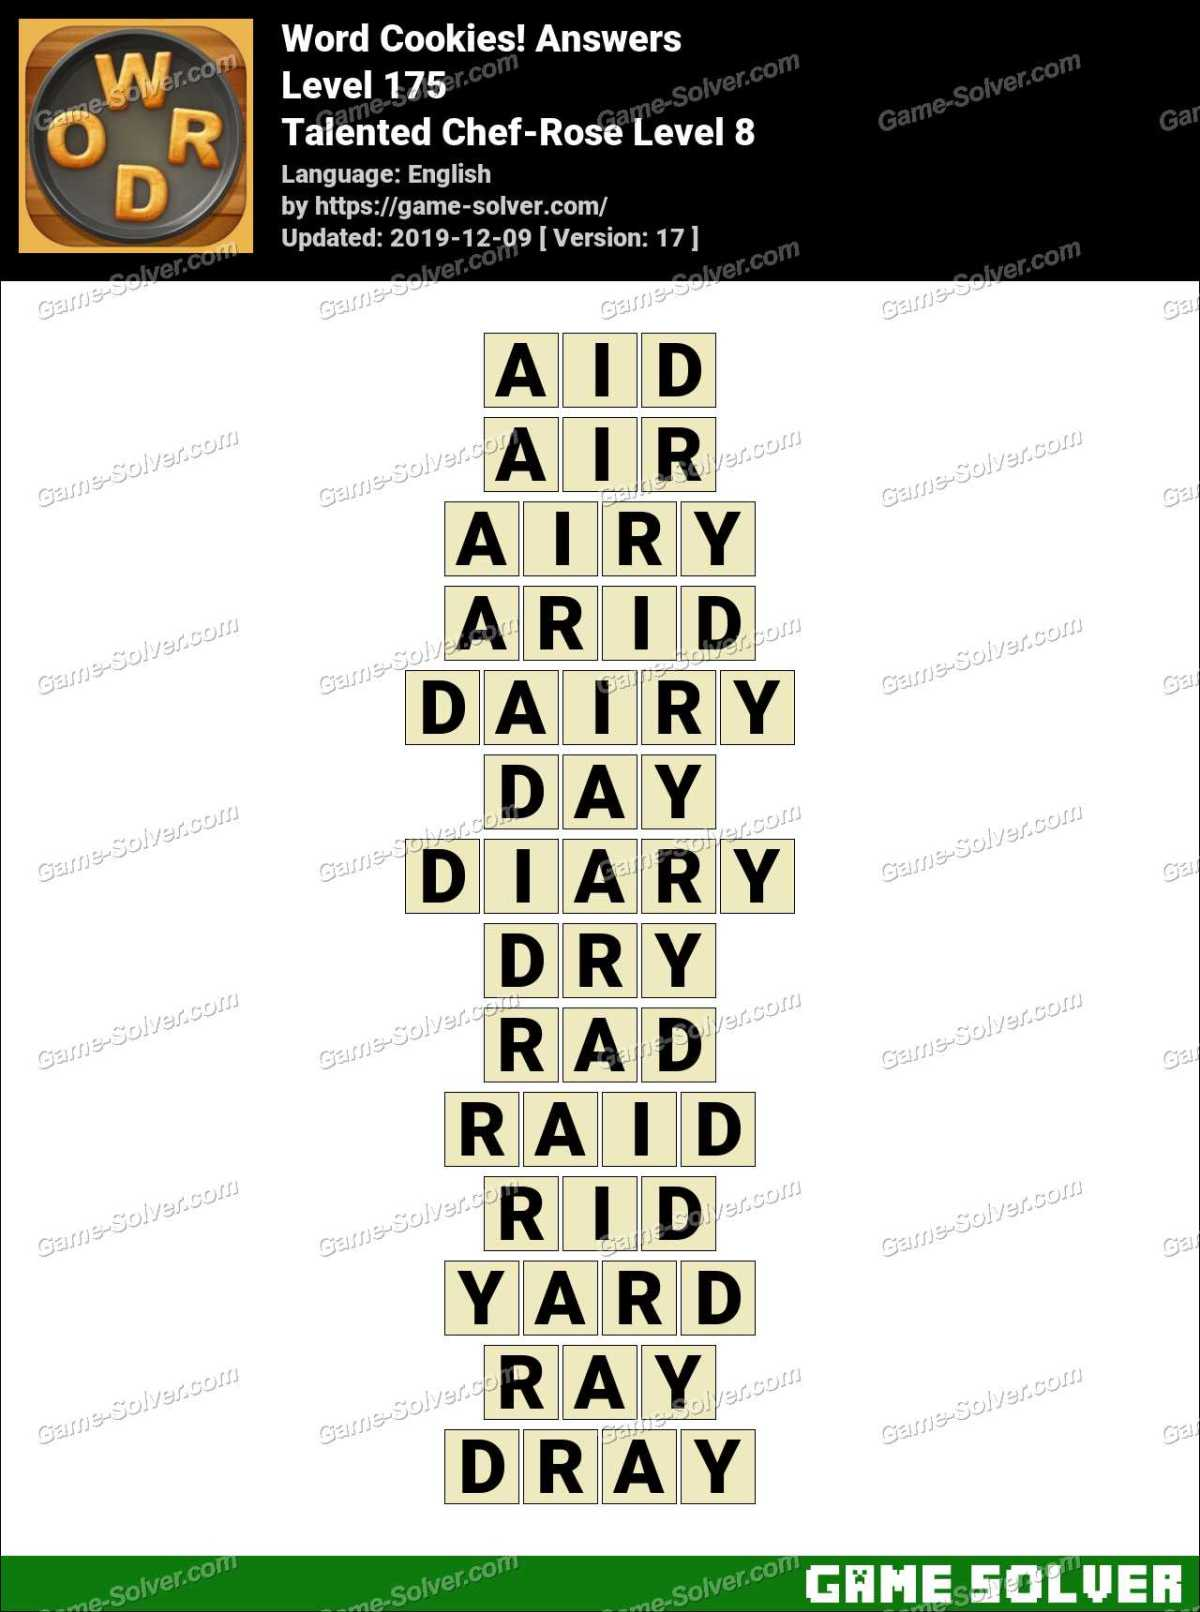 Word Cookies Talented Chef-Rose Level 8 Answers